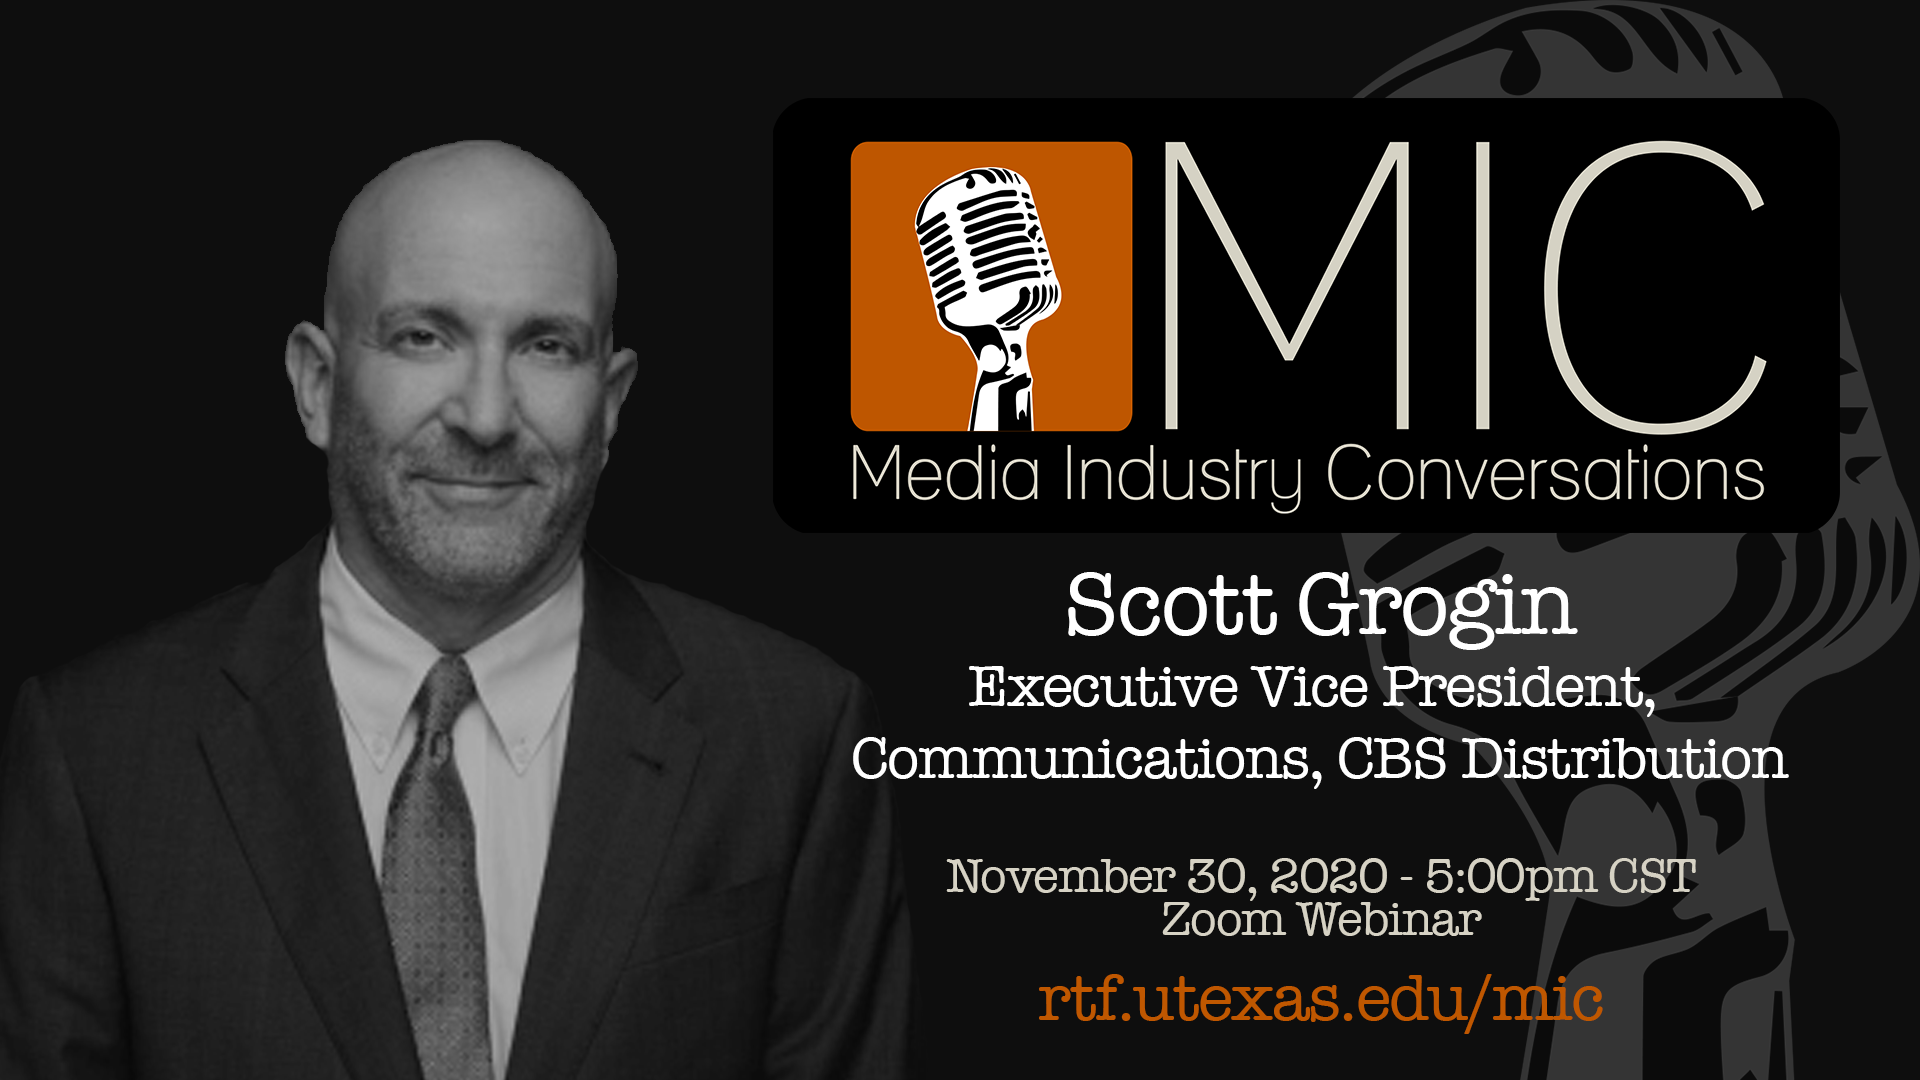 scott_grogin_MIC_november_30_2020_5pm_online